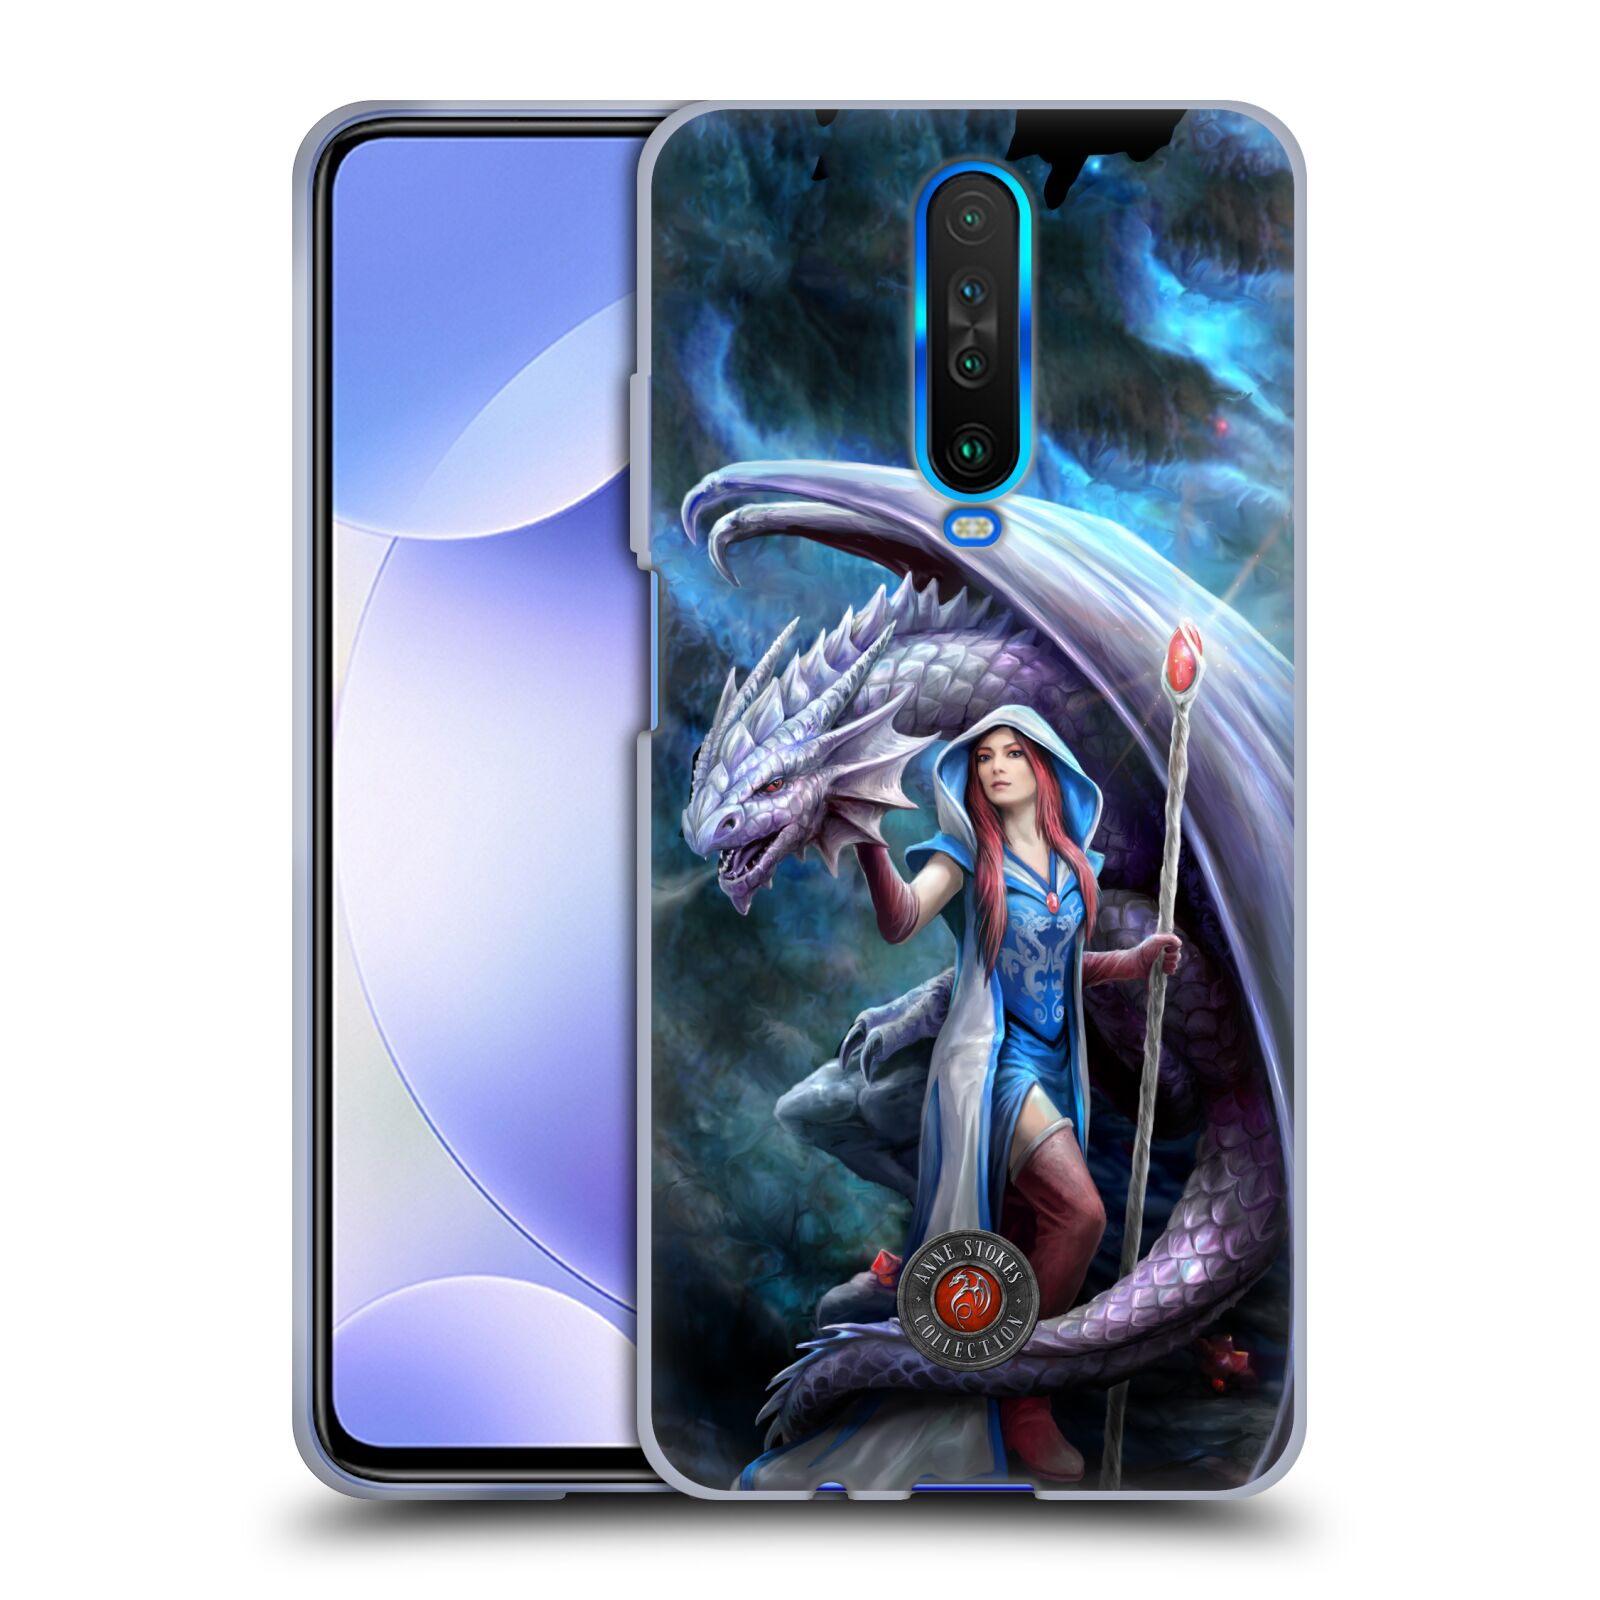 Official Anne Stokes Dragon Friendship 2 Mage Gel Case for Xiaomi Redmi K30 / 5G